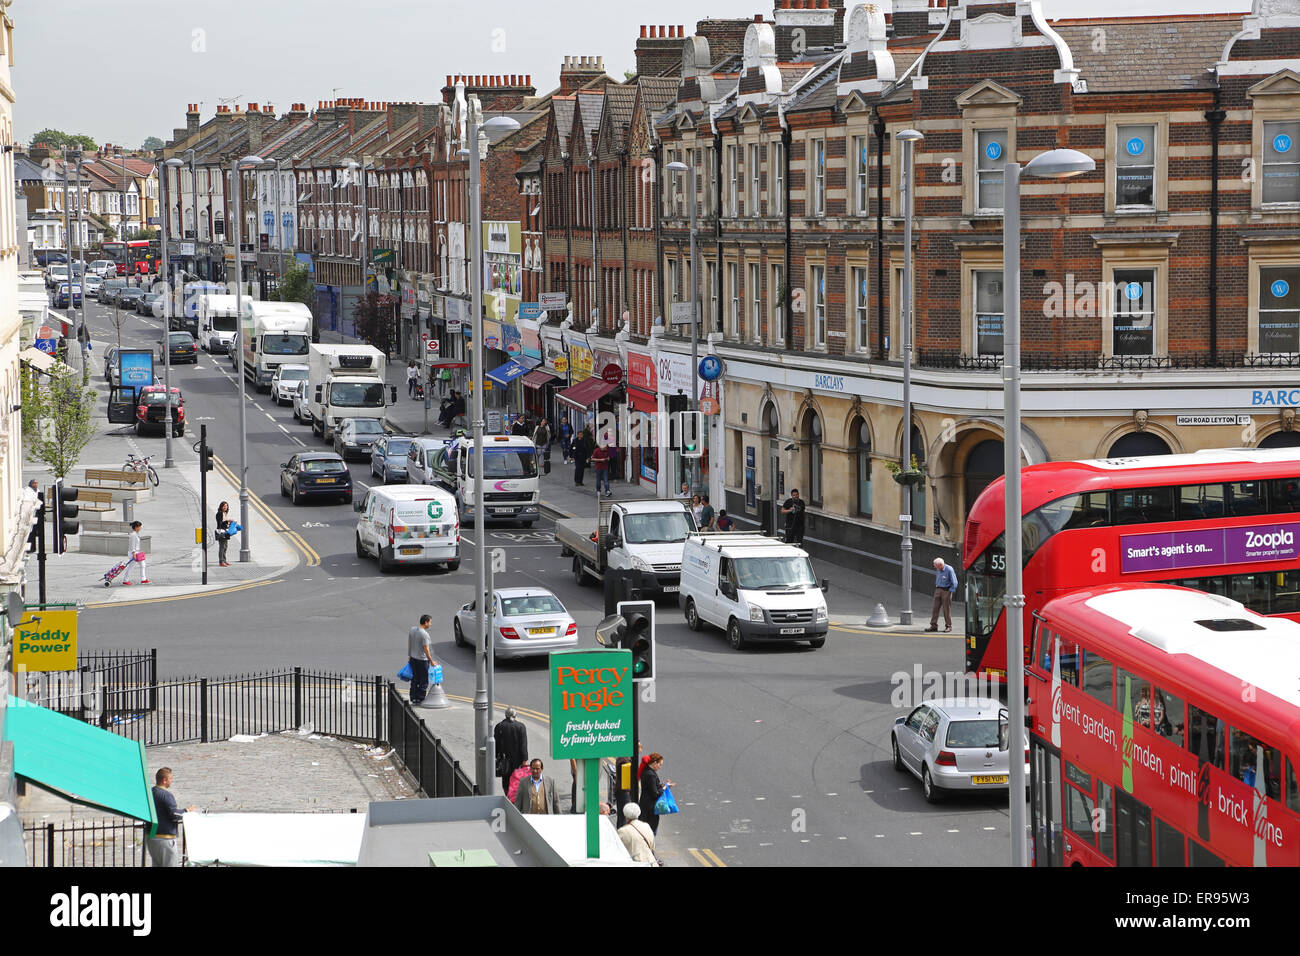 Lee Bridge Road, a busy suburban high street in North London showing traffic congestion, buses and pedestrians - Stock Image